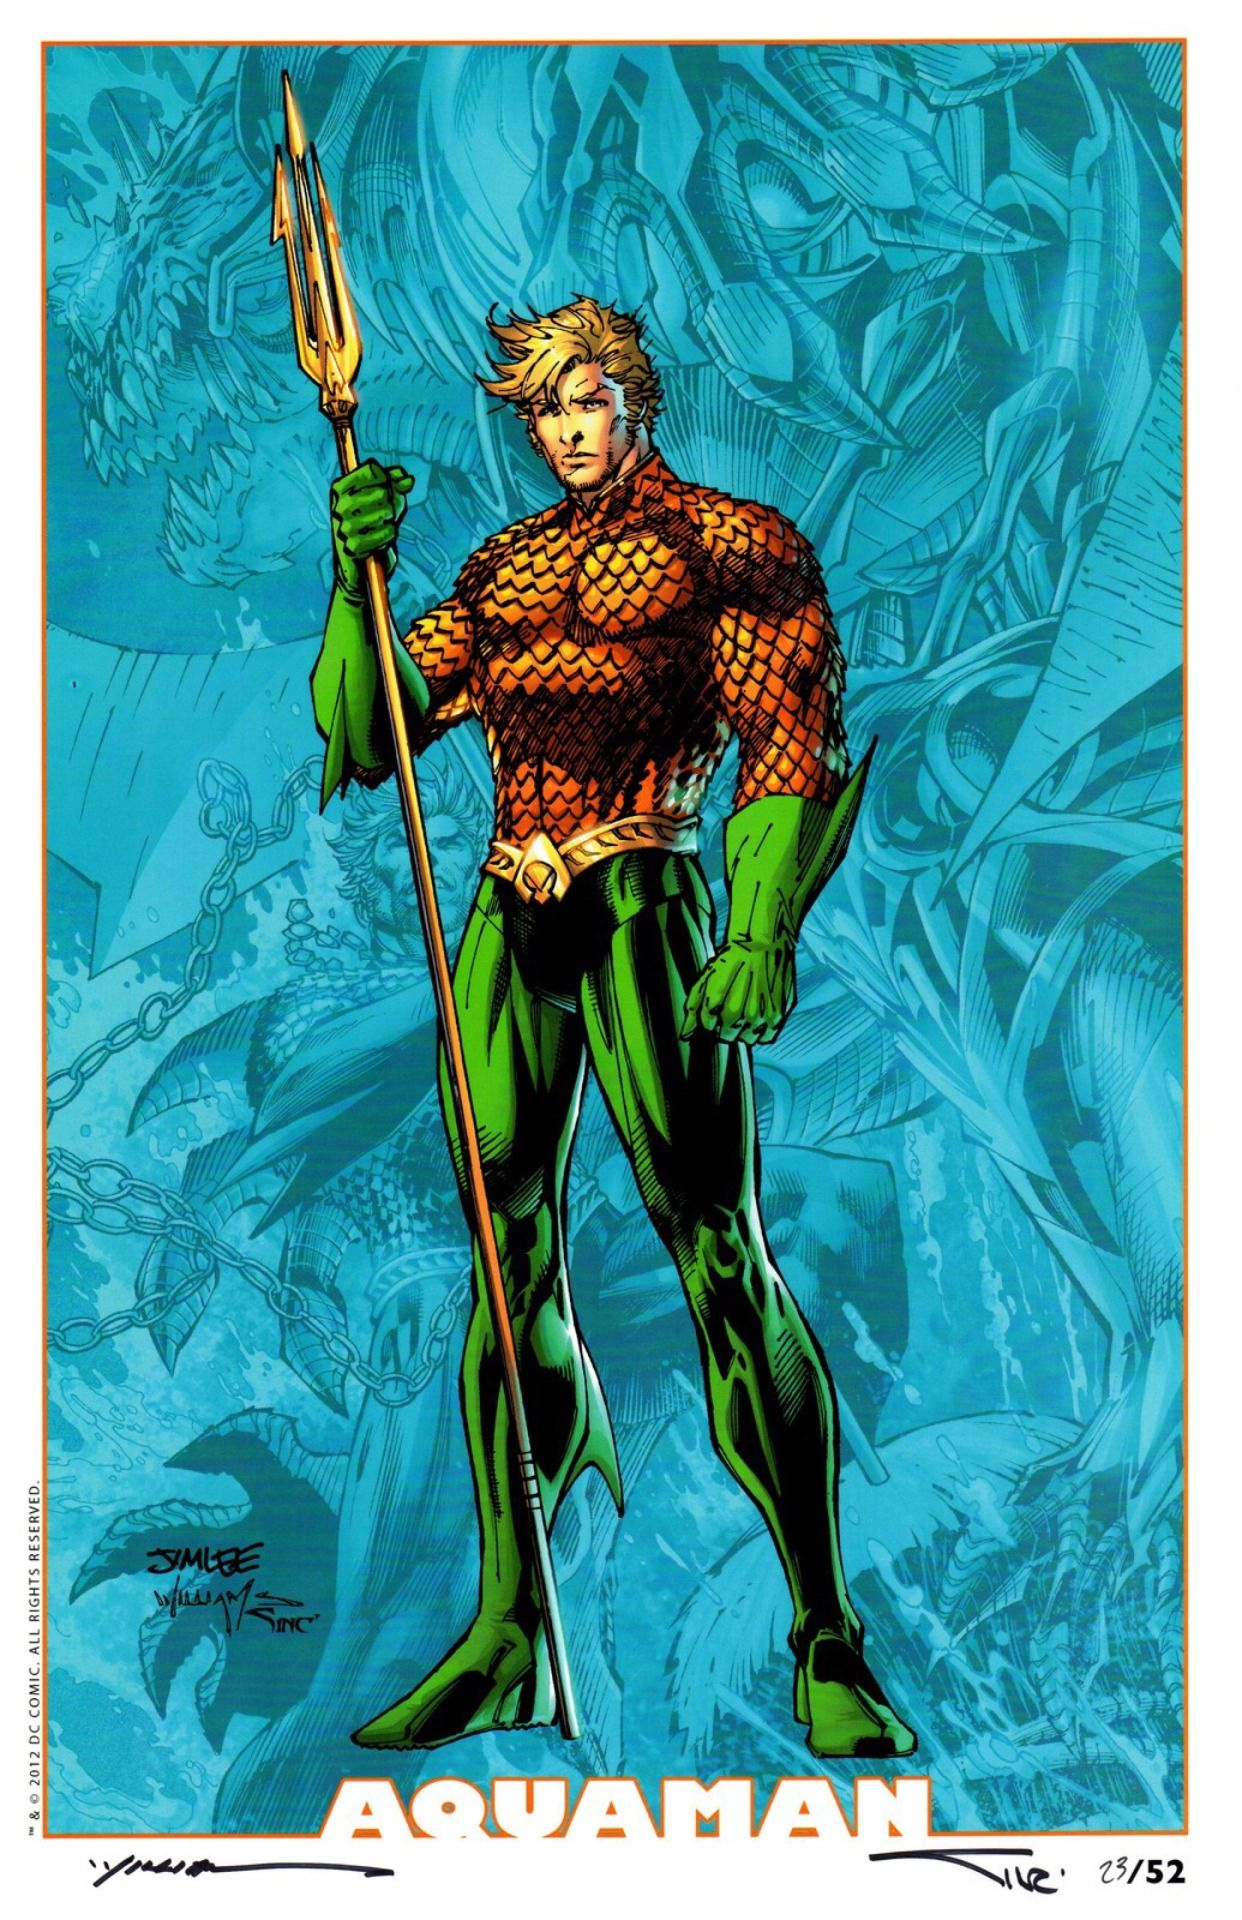 Aquaman by Jim Lee